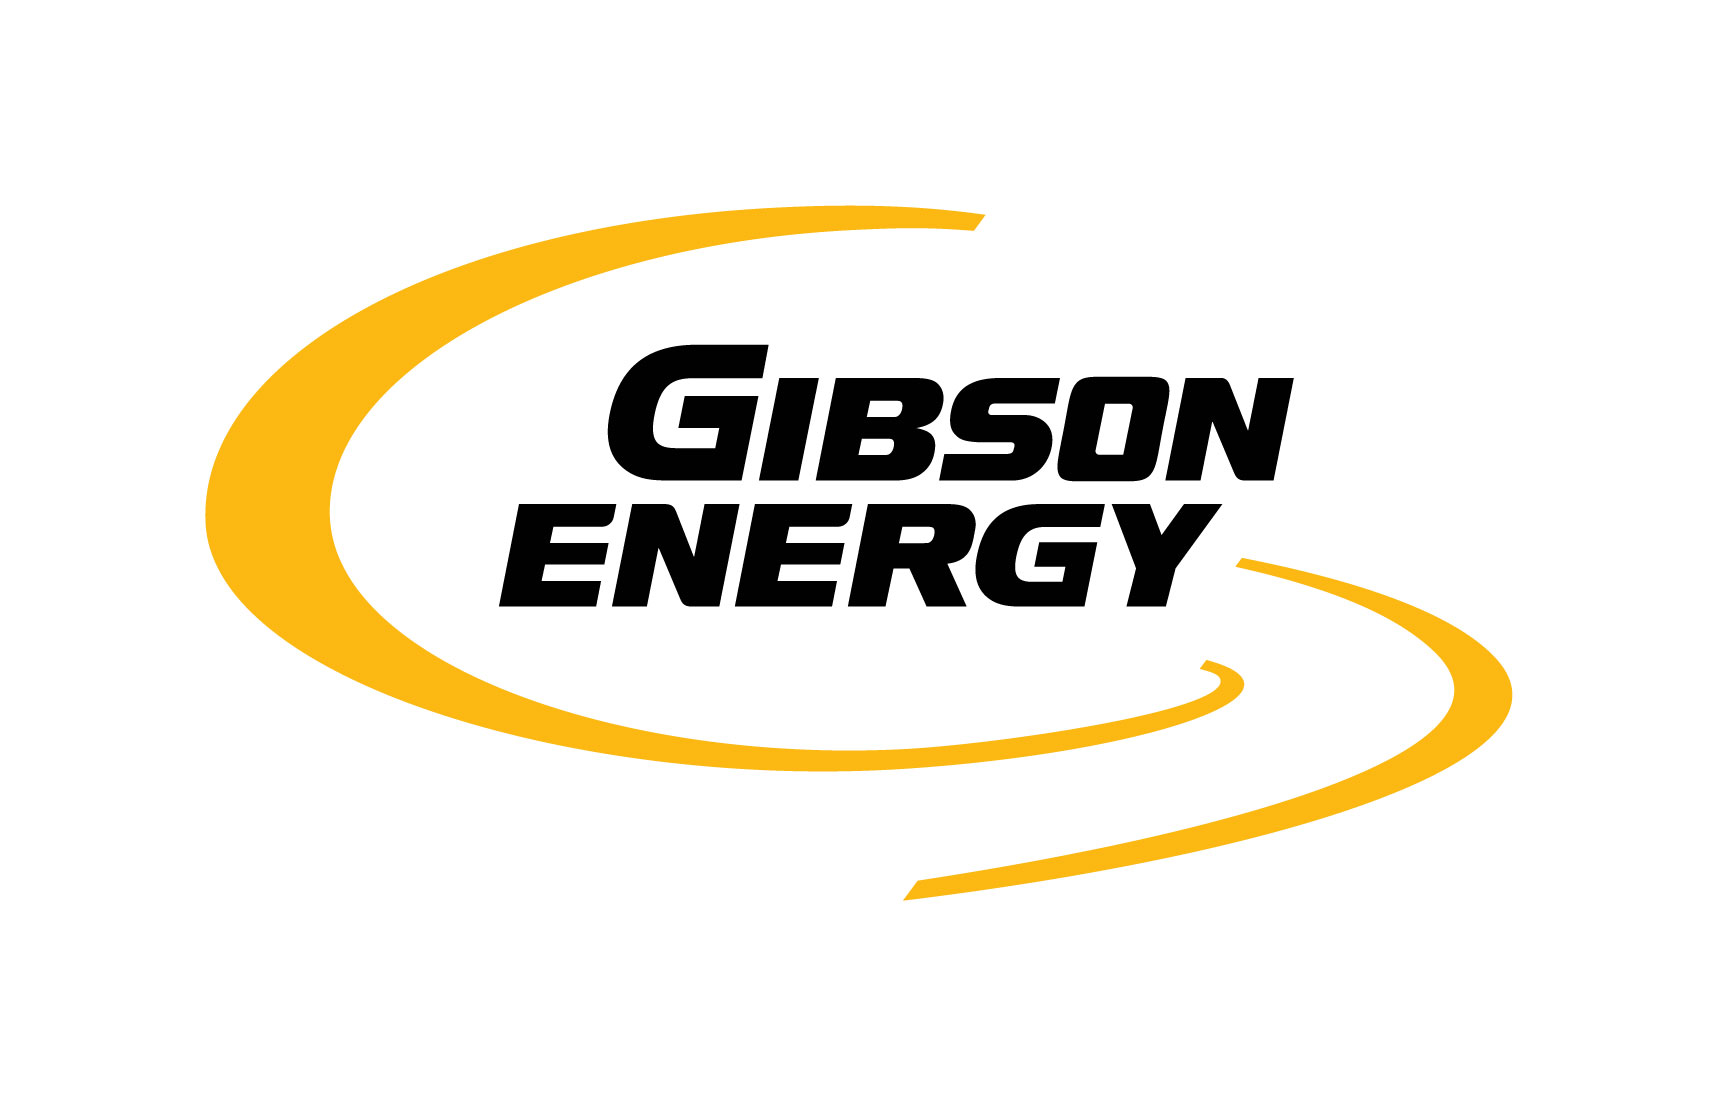 Gibson Energy Announces Redemption of 5